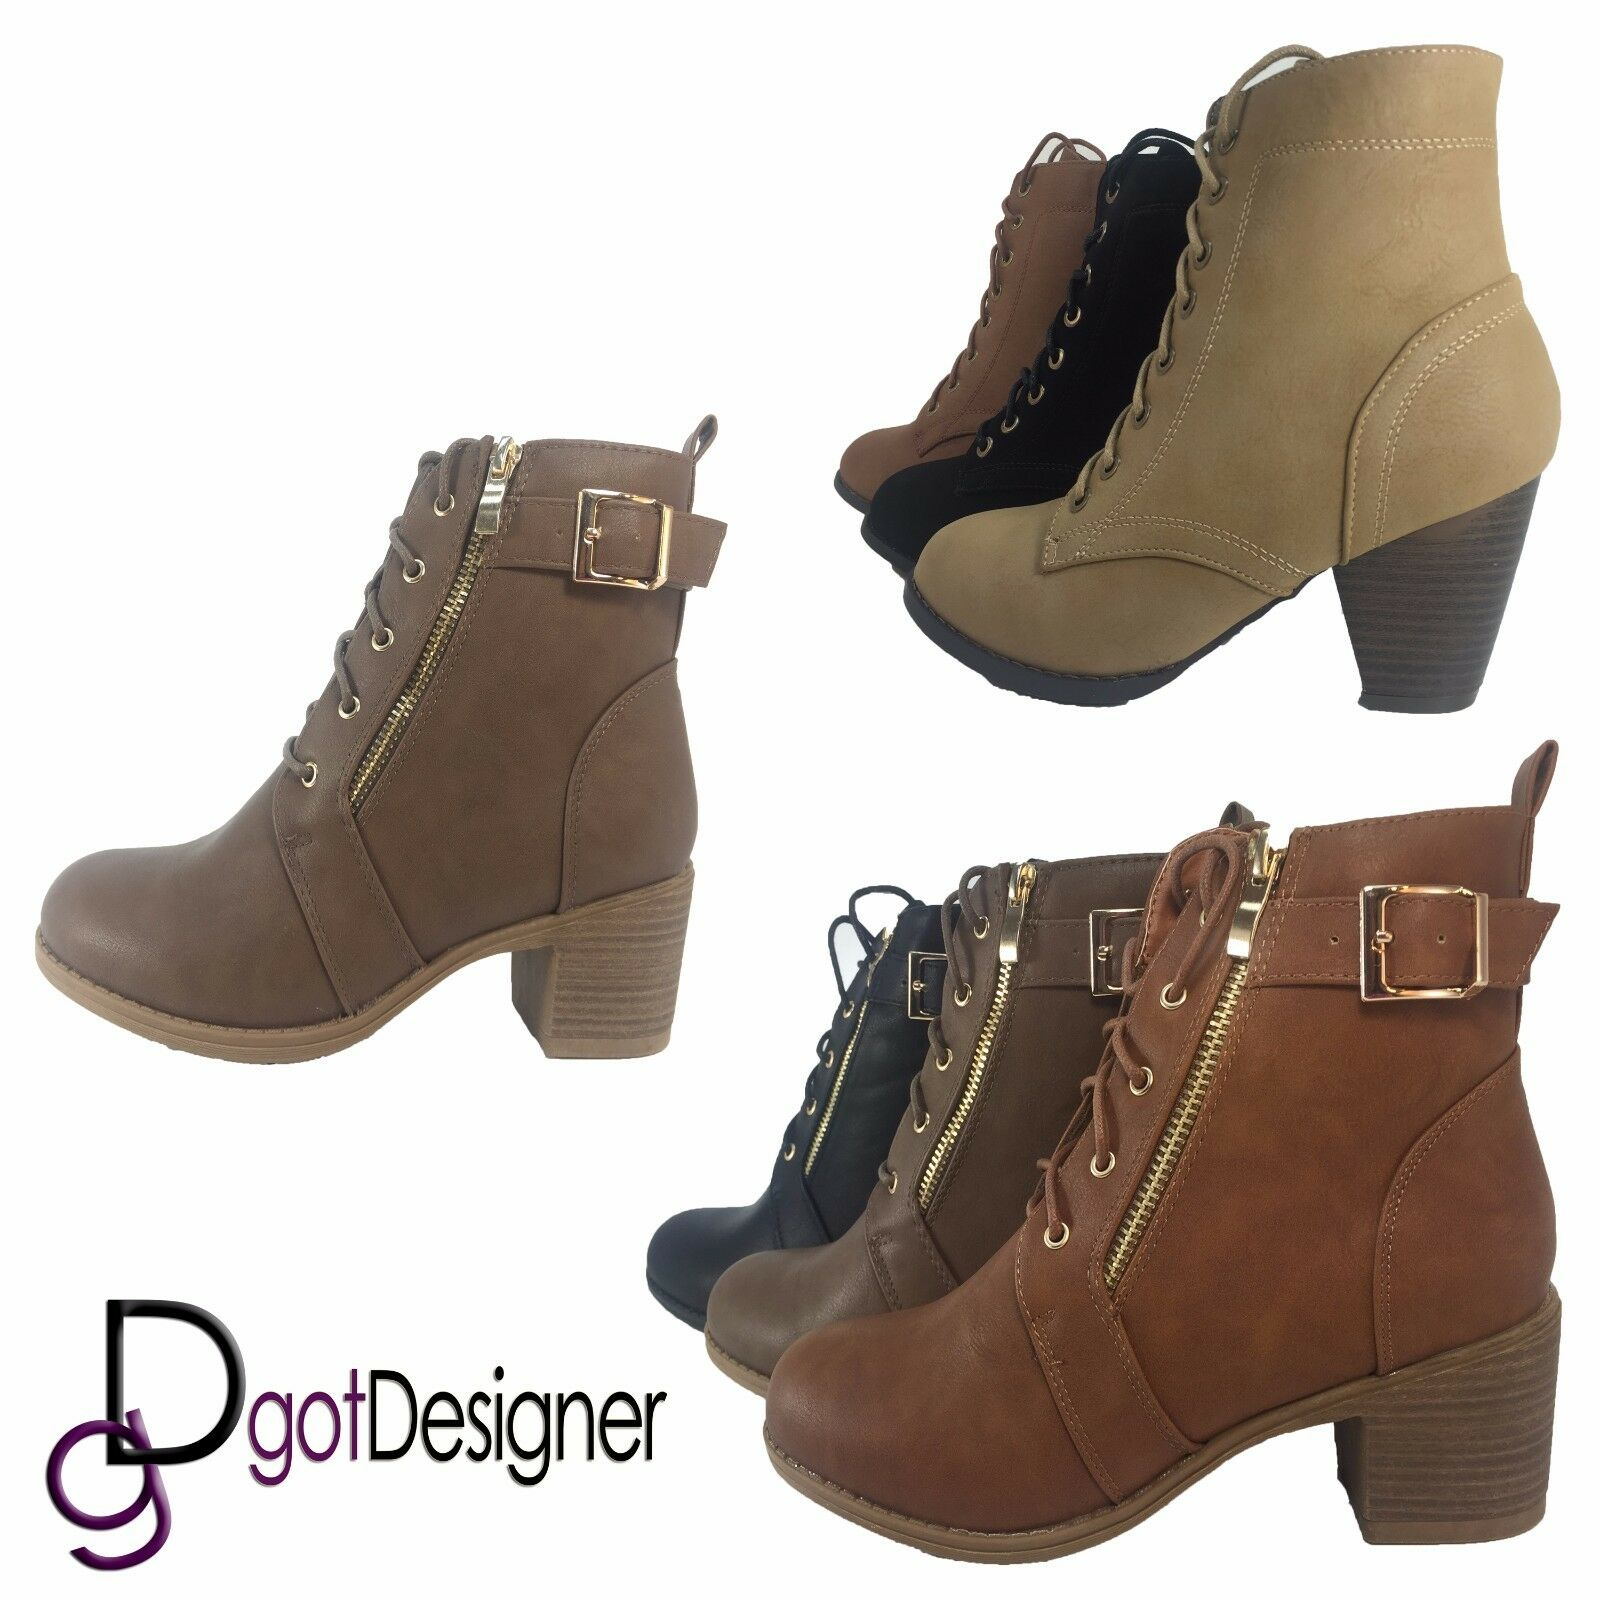 NEW Womens Fashion Shoes Booties Ankle Boots Wedges Faux Leather Strap Around